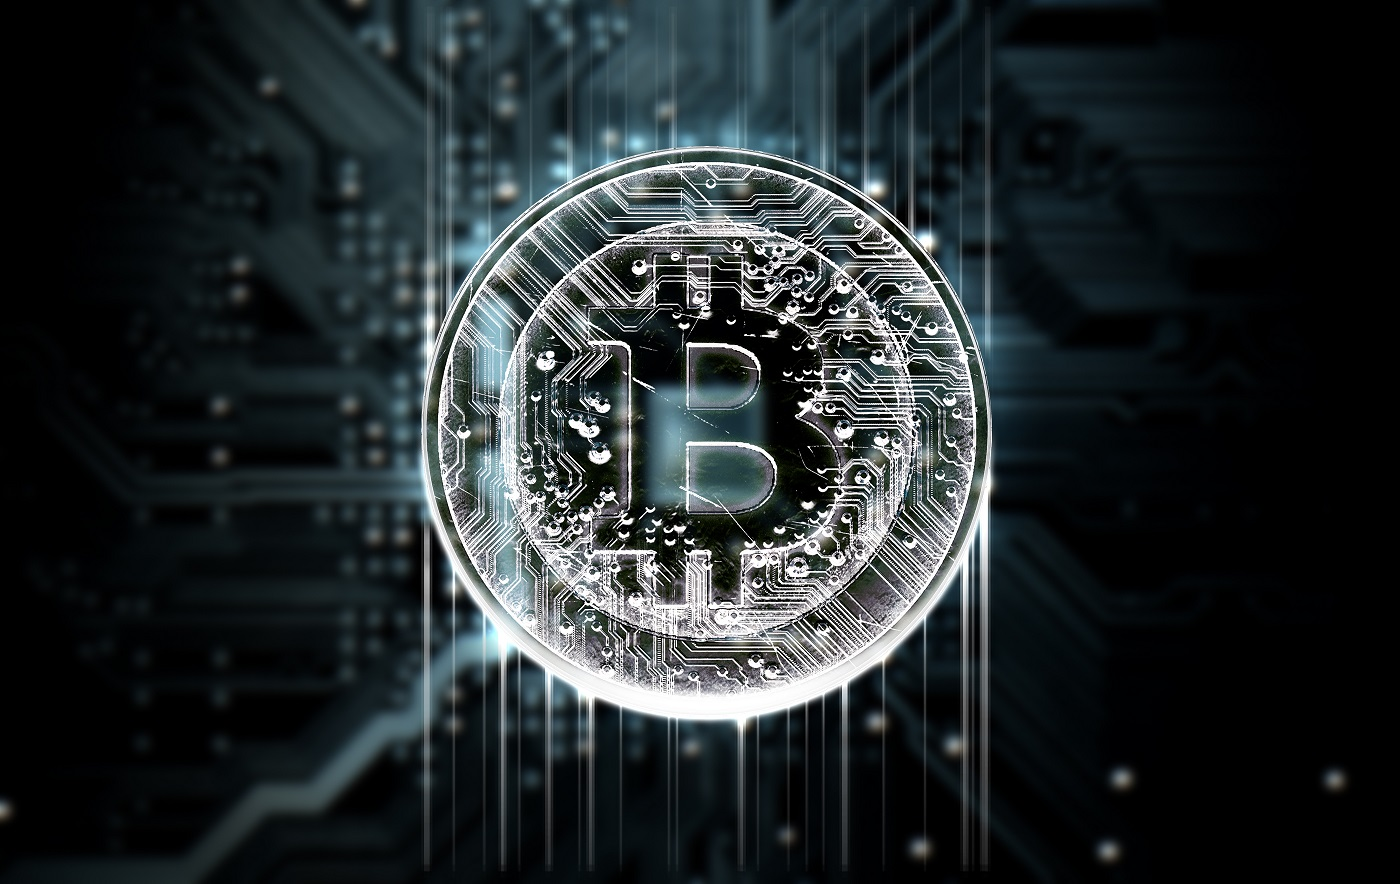 Currency of the Future: A Beginners Look At Bitcoin